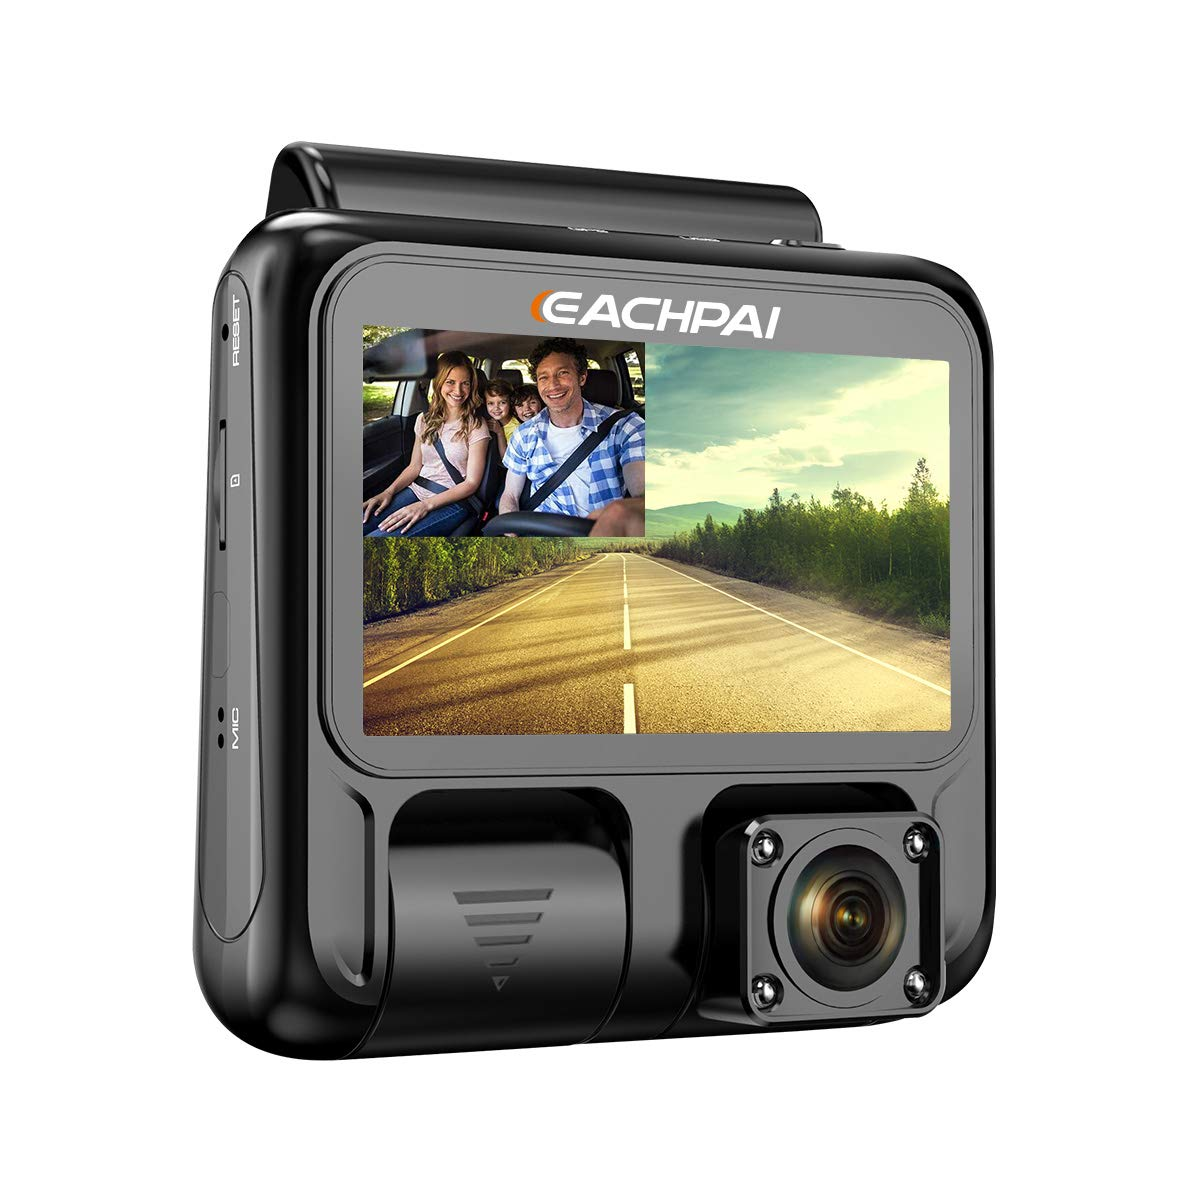 Dual Dash Cam Full HD 1920x1080P Inside and Outside Car Camera Dash Cams 3'' LCD with Super Capacitor, Sony Sensor, WDR, Super Night Vision, G-Sensor, Loop Recording, Motion Detection for Uber Lyft Ta